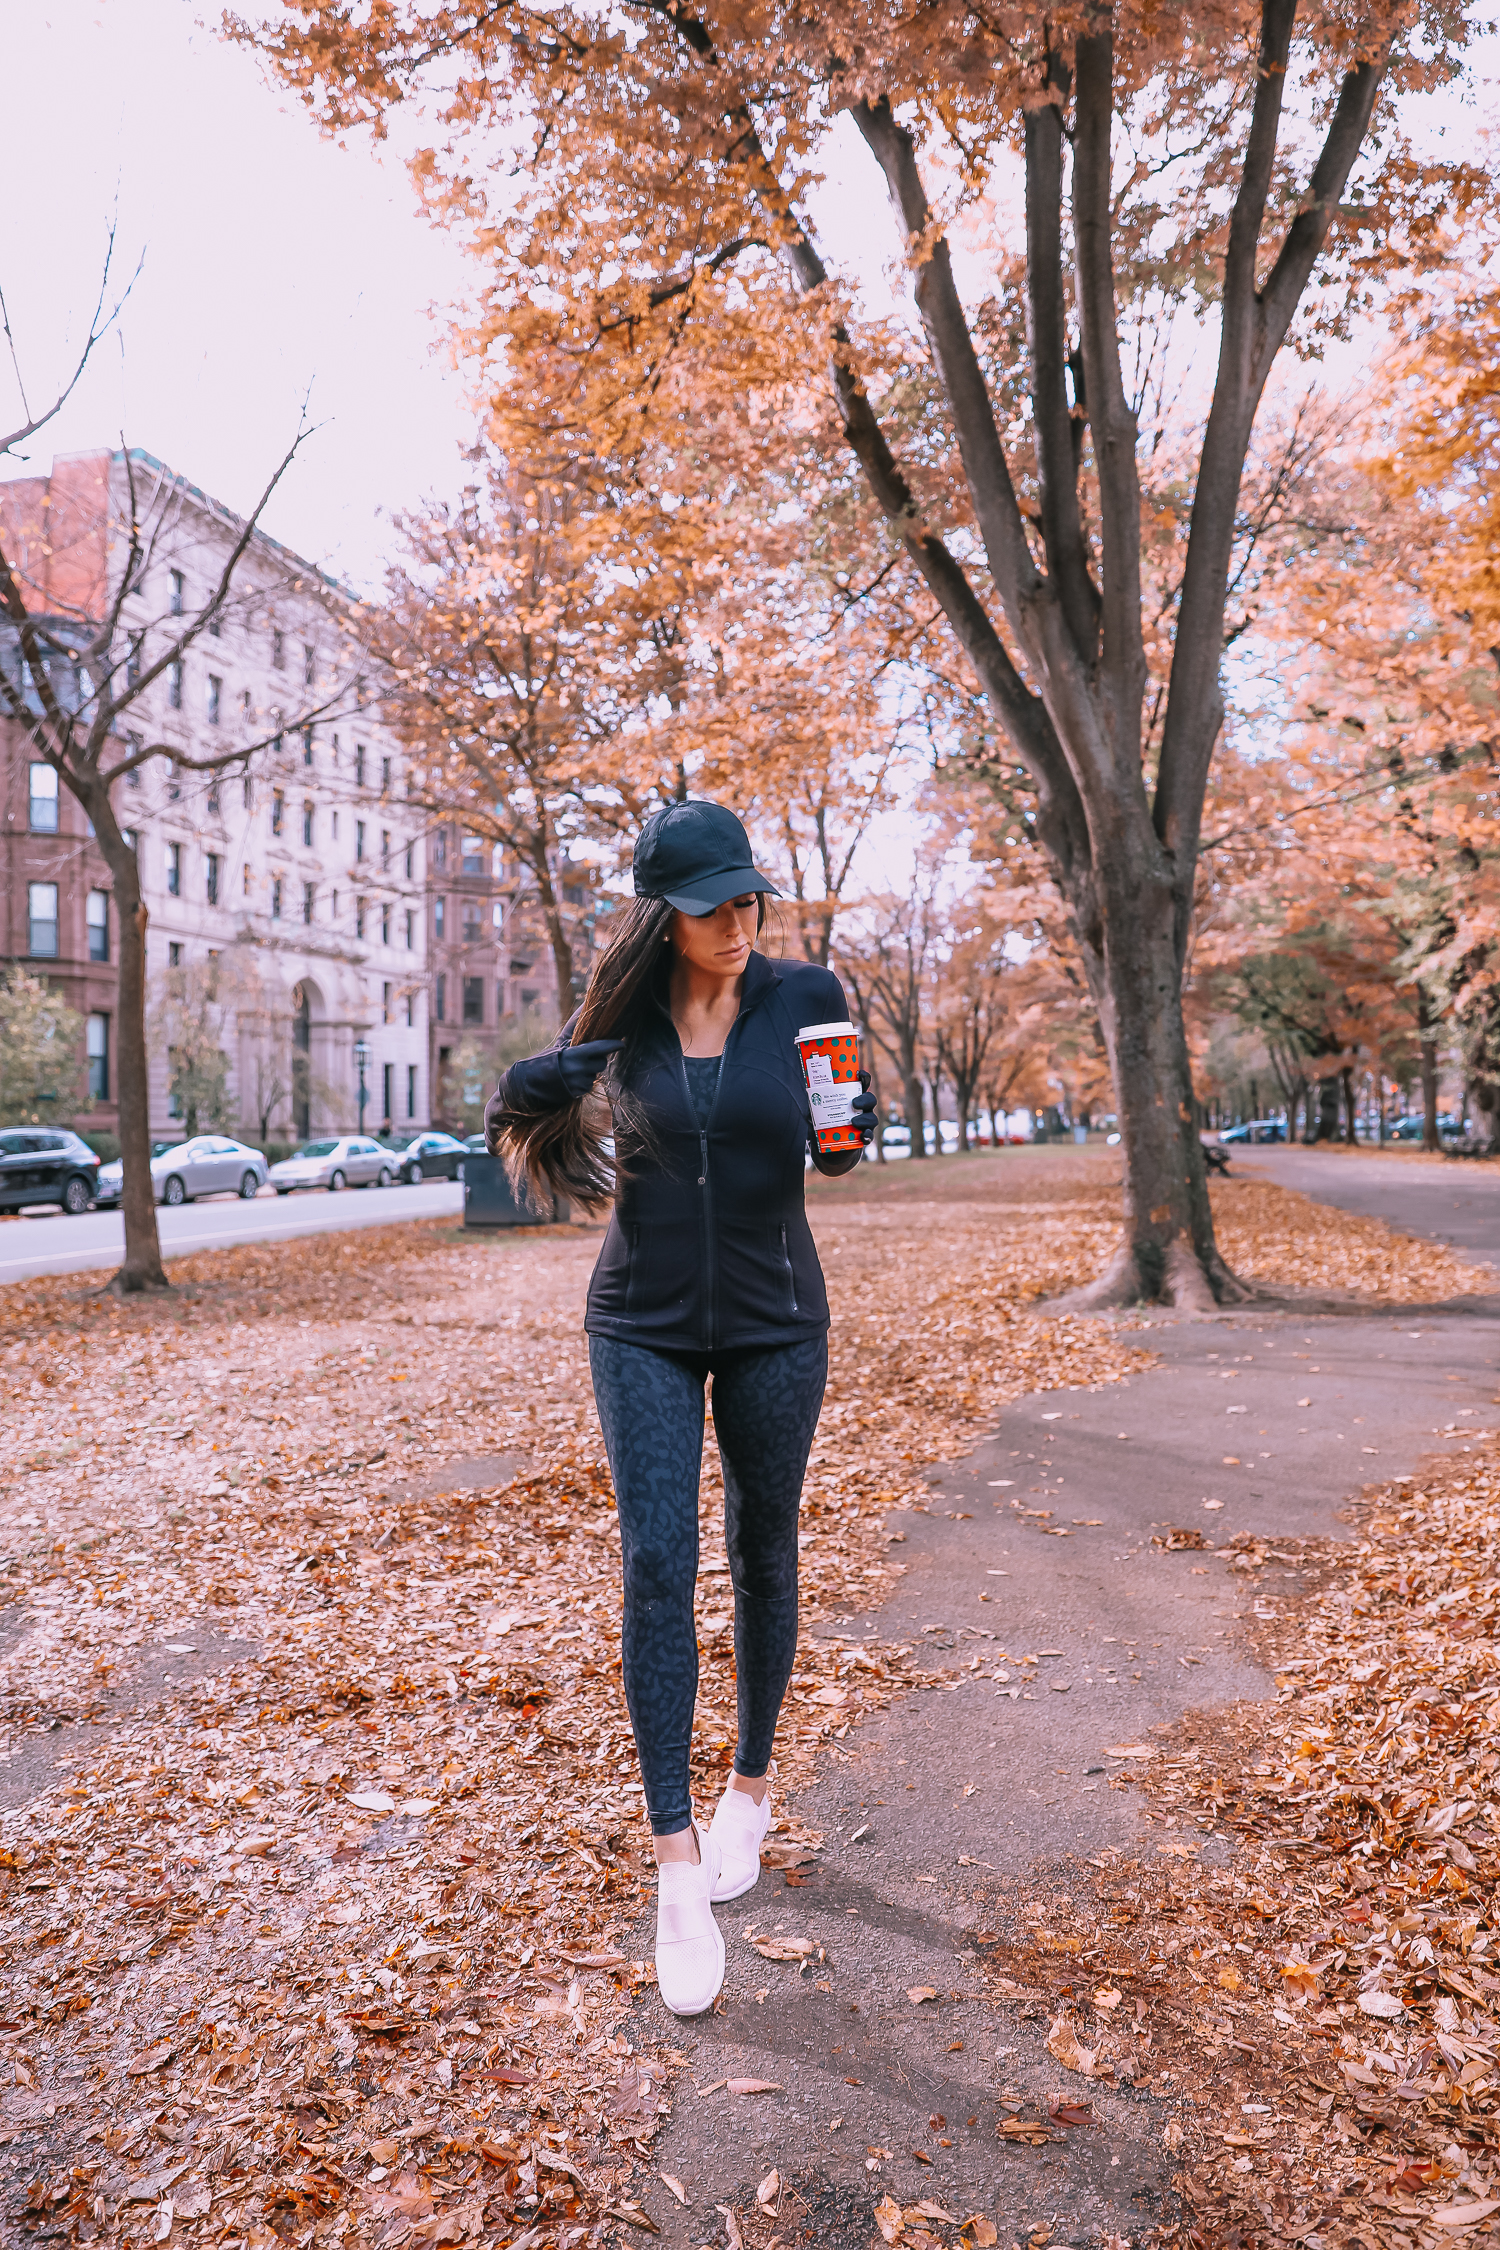 Lulu Lemon Leopard Leggings and Vest Outfit featured by top US fashion blog, The Sweetest Thing: image of a woman wearing Lulu Lemon Leopard Leggings, Lulu Lemon oversized puffer vest, Lulu Lemon black jacket and a Lulu Lemon sports bra.